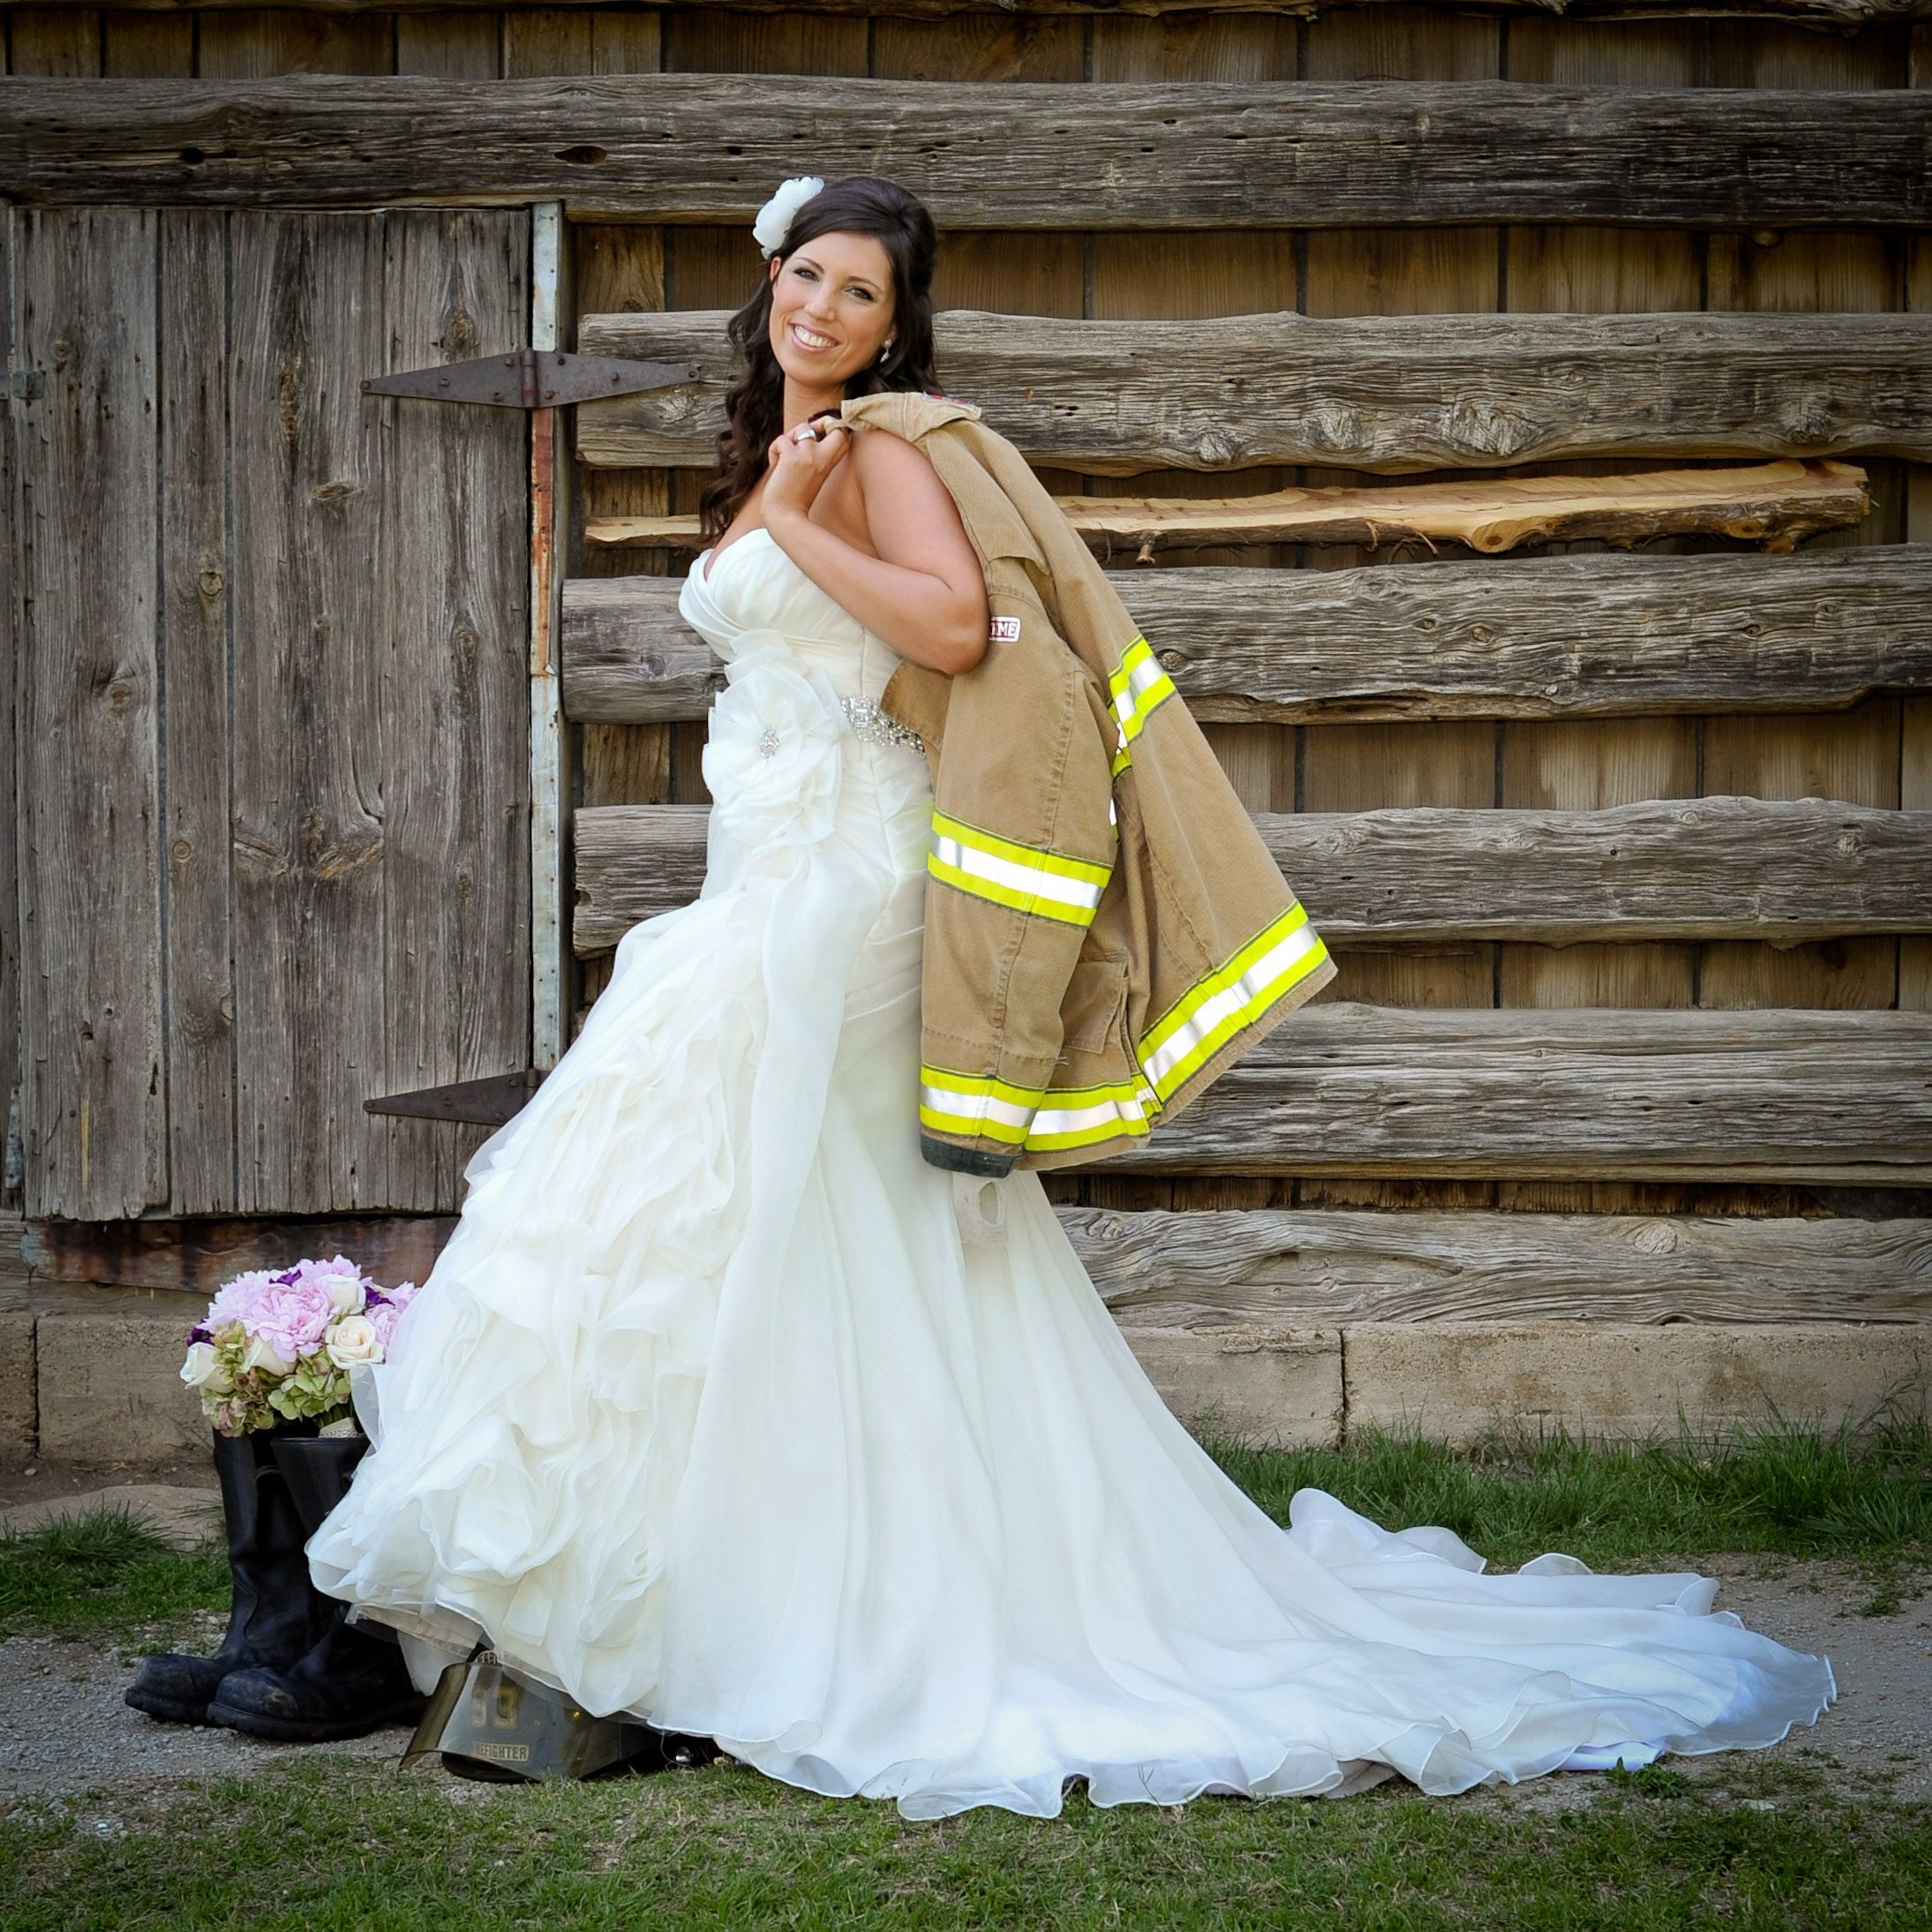 Firefighter Bridal Pictures By Jennifer Gilbert